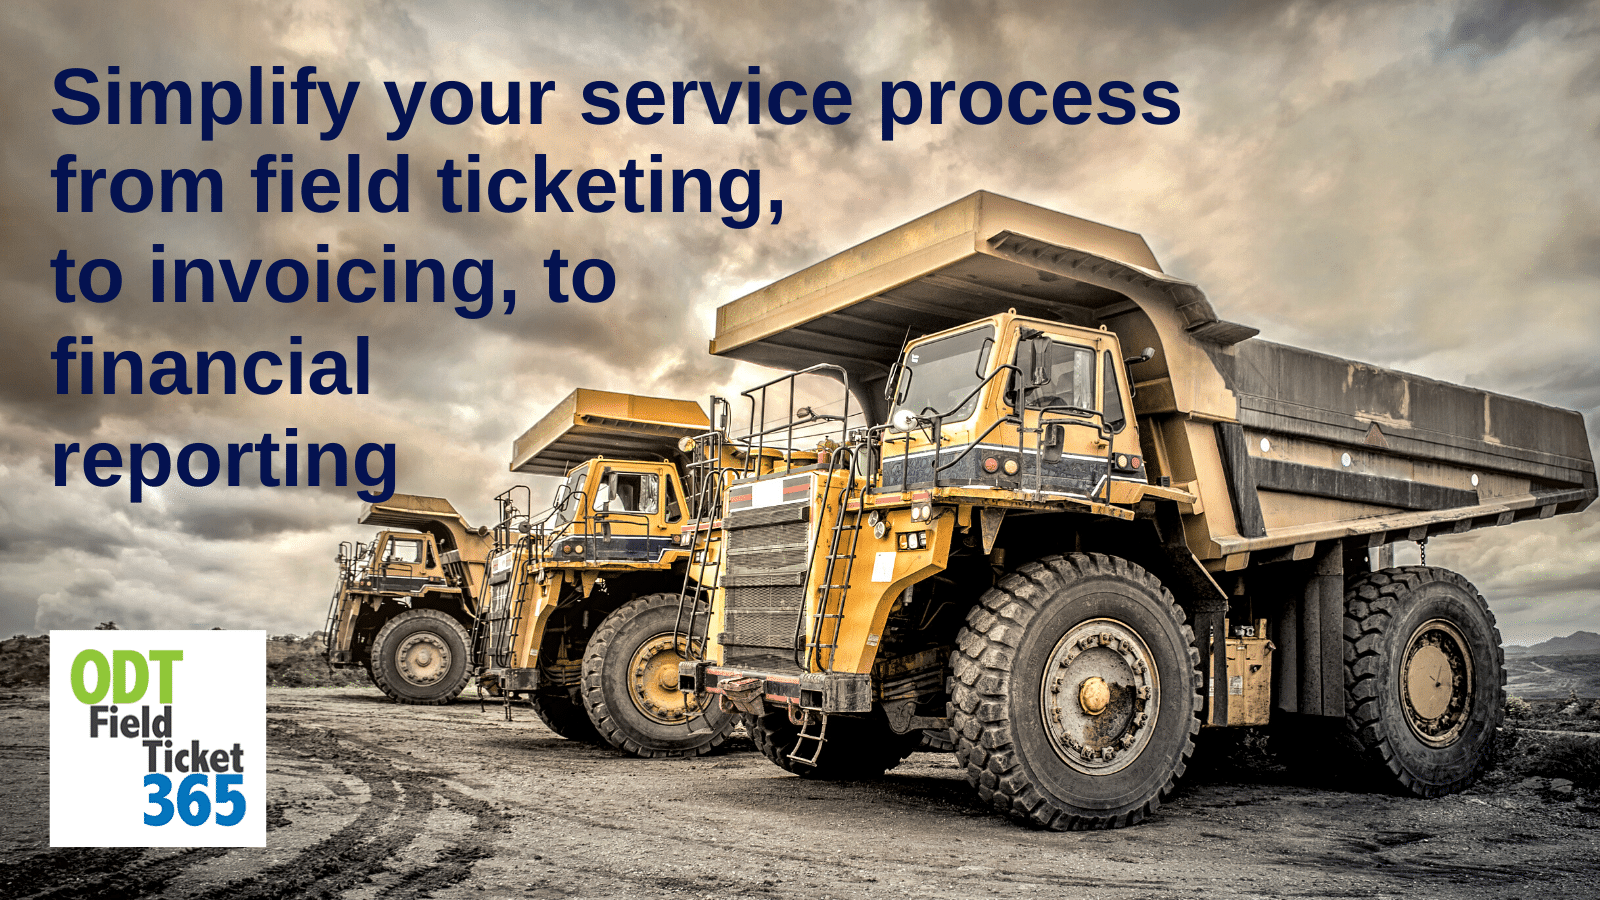 Simplify your service process from field ticketing, to invoicing, to financial reporting.